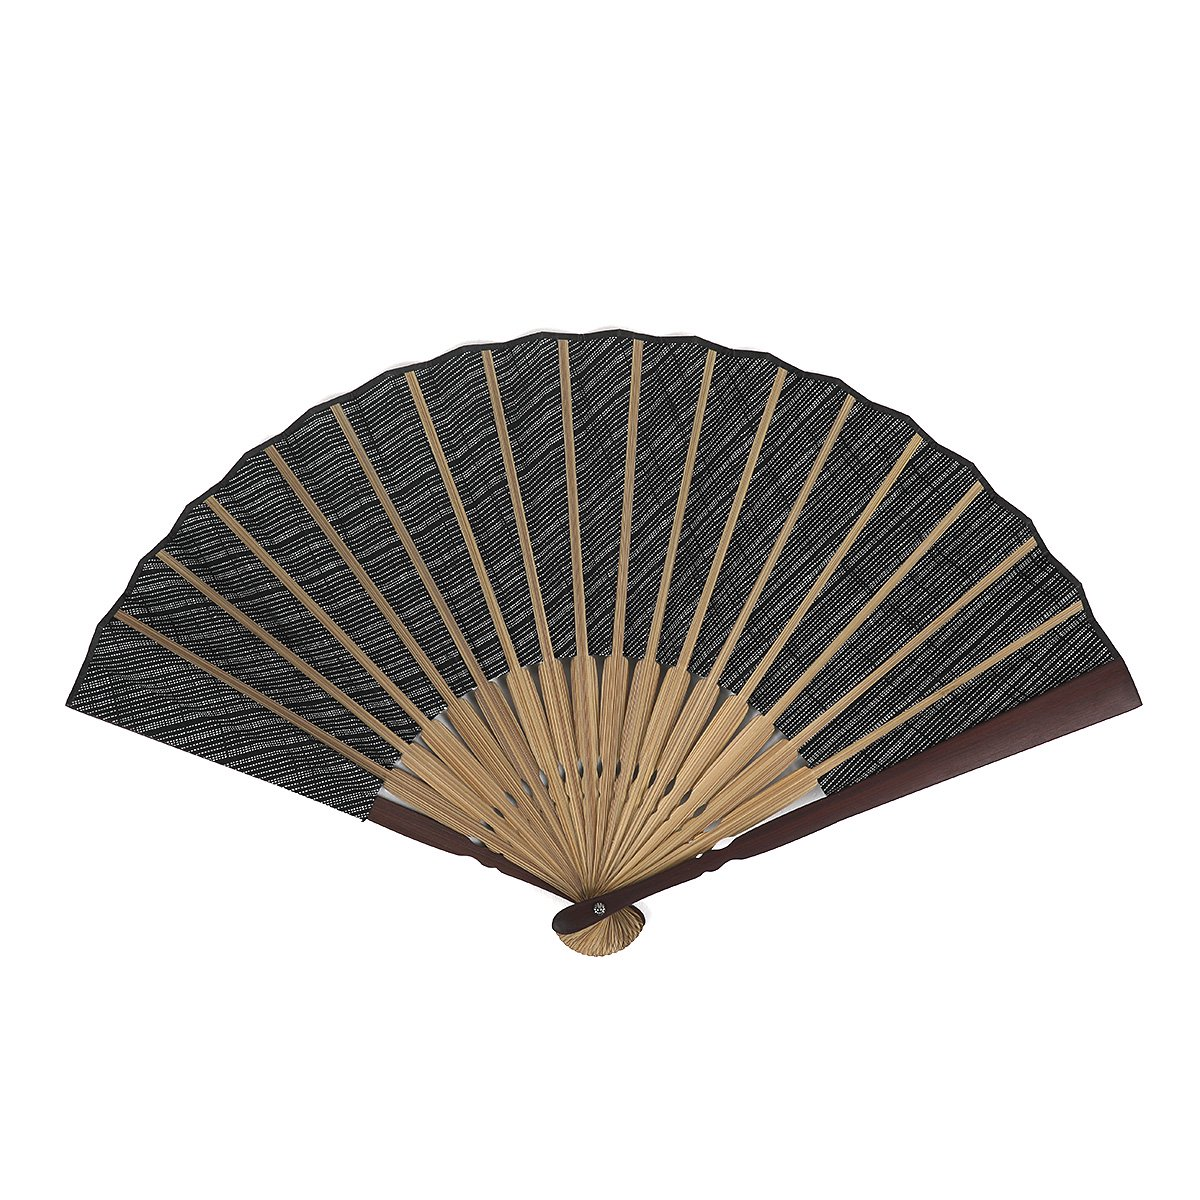 COTTON FAN Mens 詳細画像4